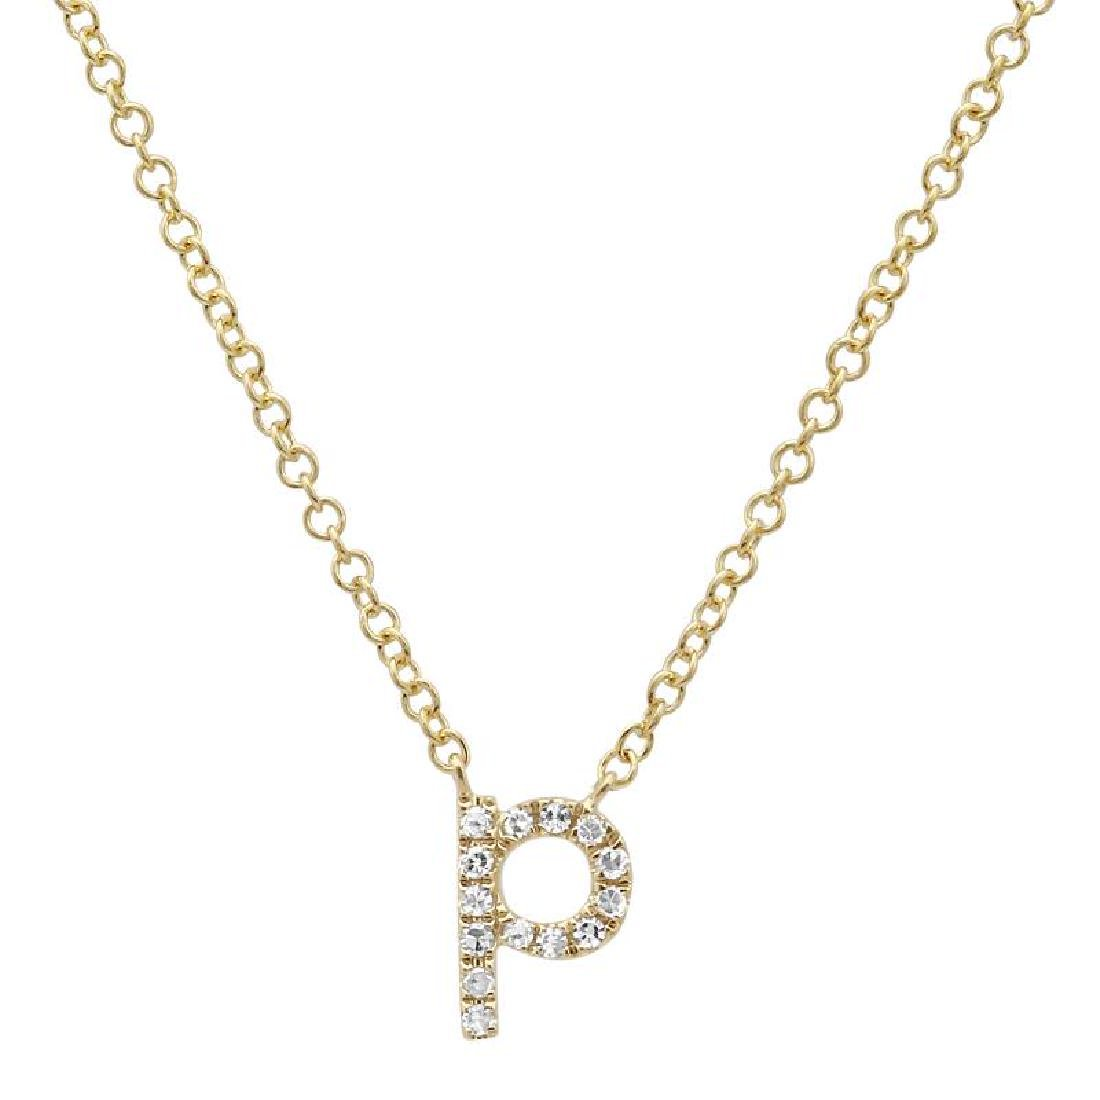 14KT Yellow Gold Diamond Necklace